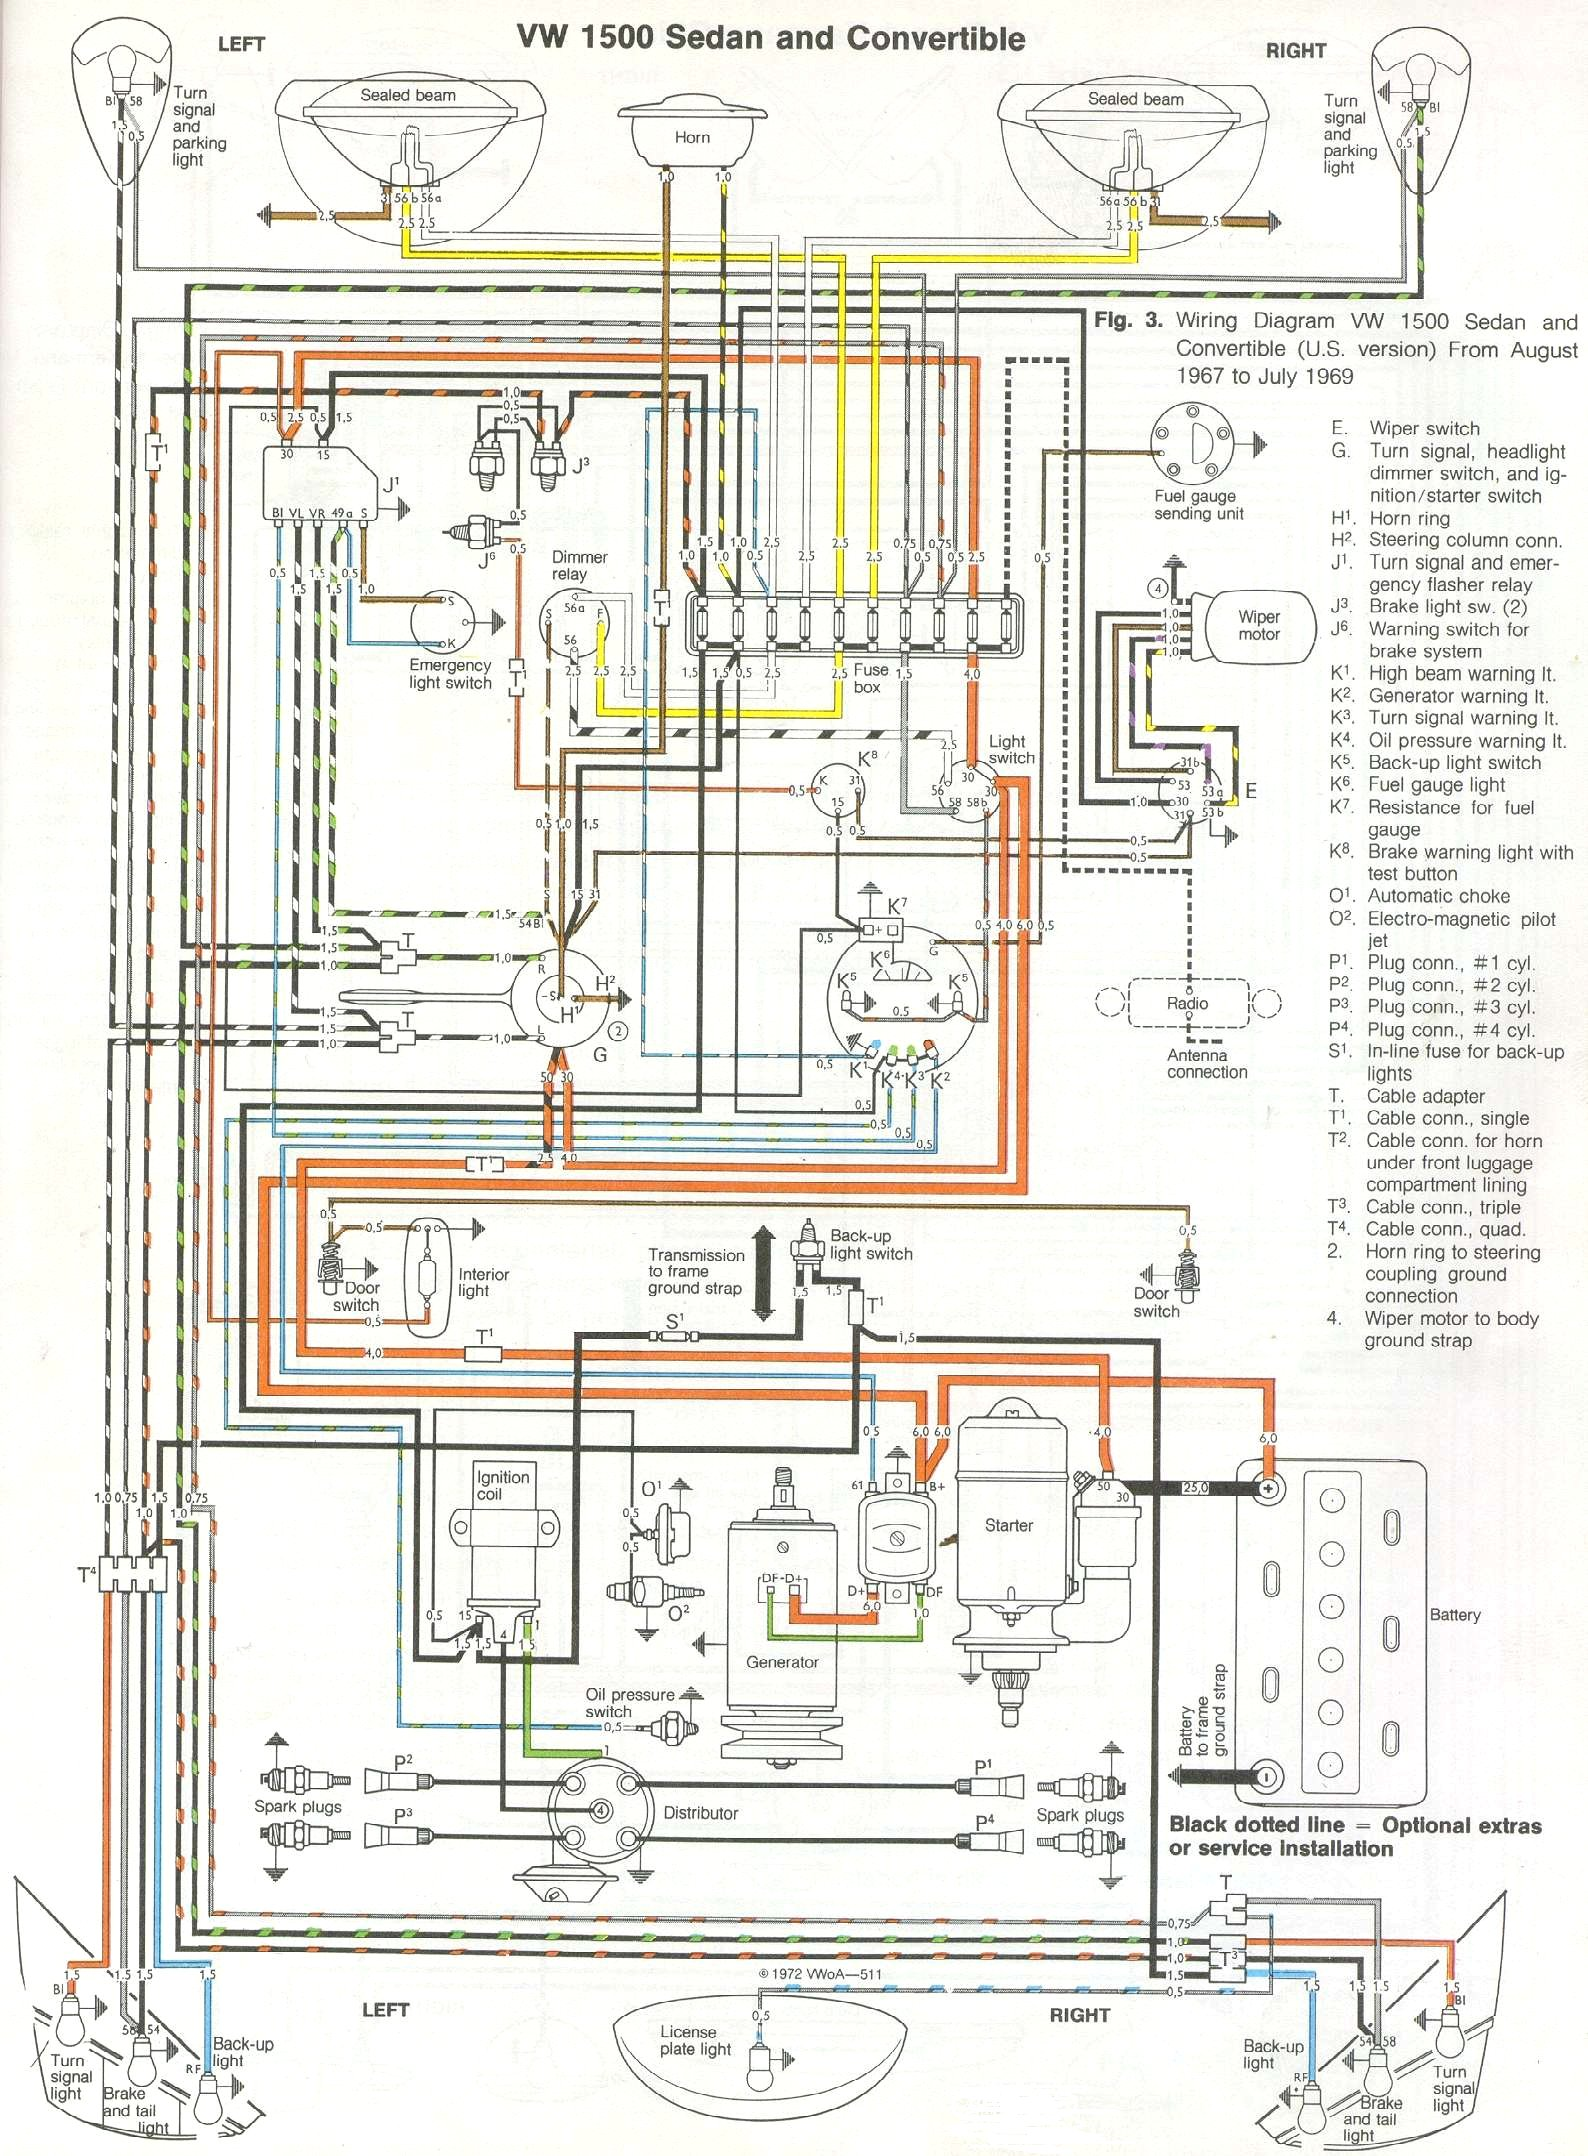 71 Vw Super Beetle Coil Wiring Custom Project Diagram Mb Quart Wm1 Dvd 1969 Thegoldenbug Com